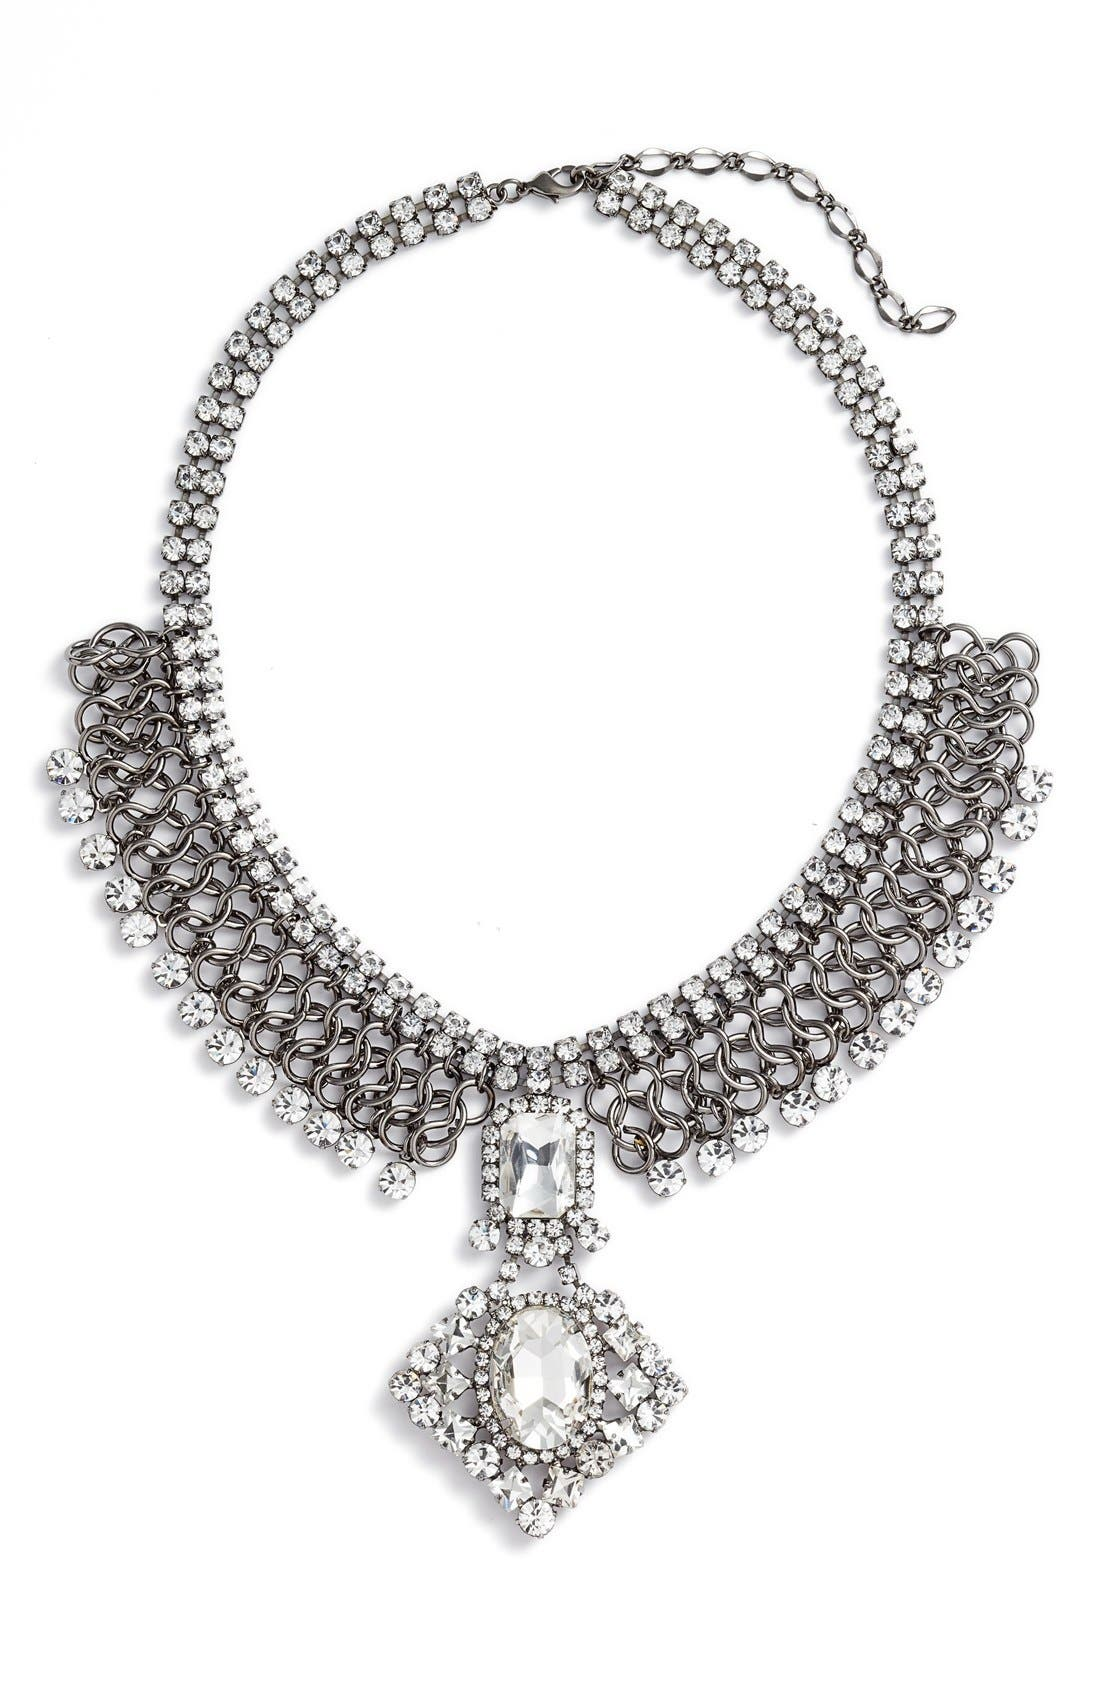 Alternate Image 1 Selected - Cristabelle Statement Collar Necklace